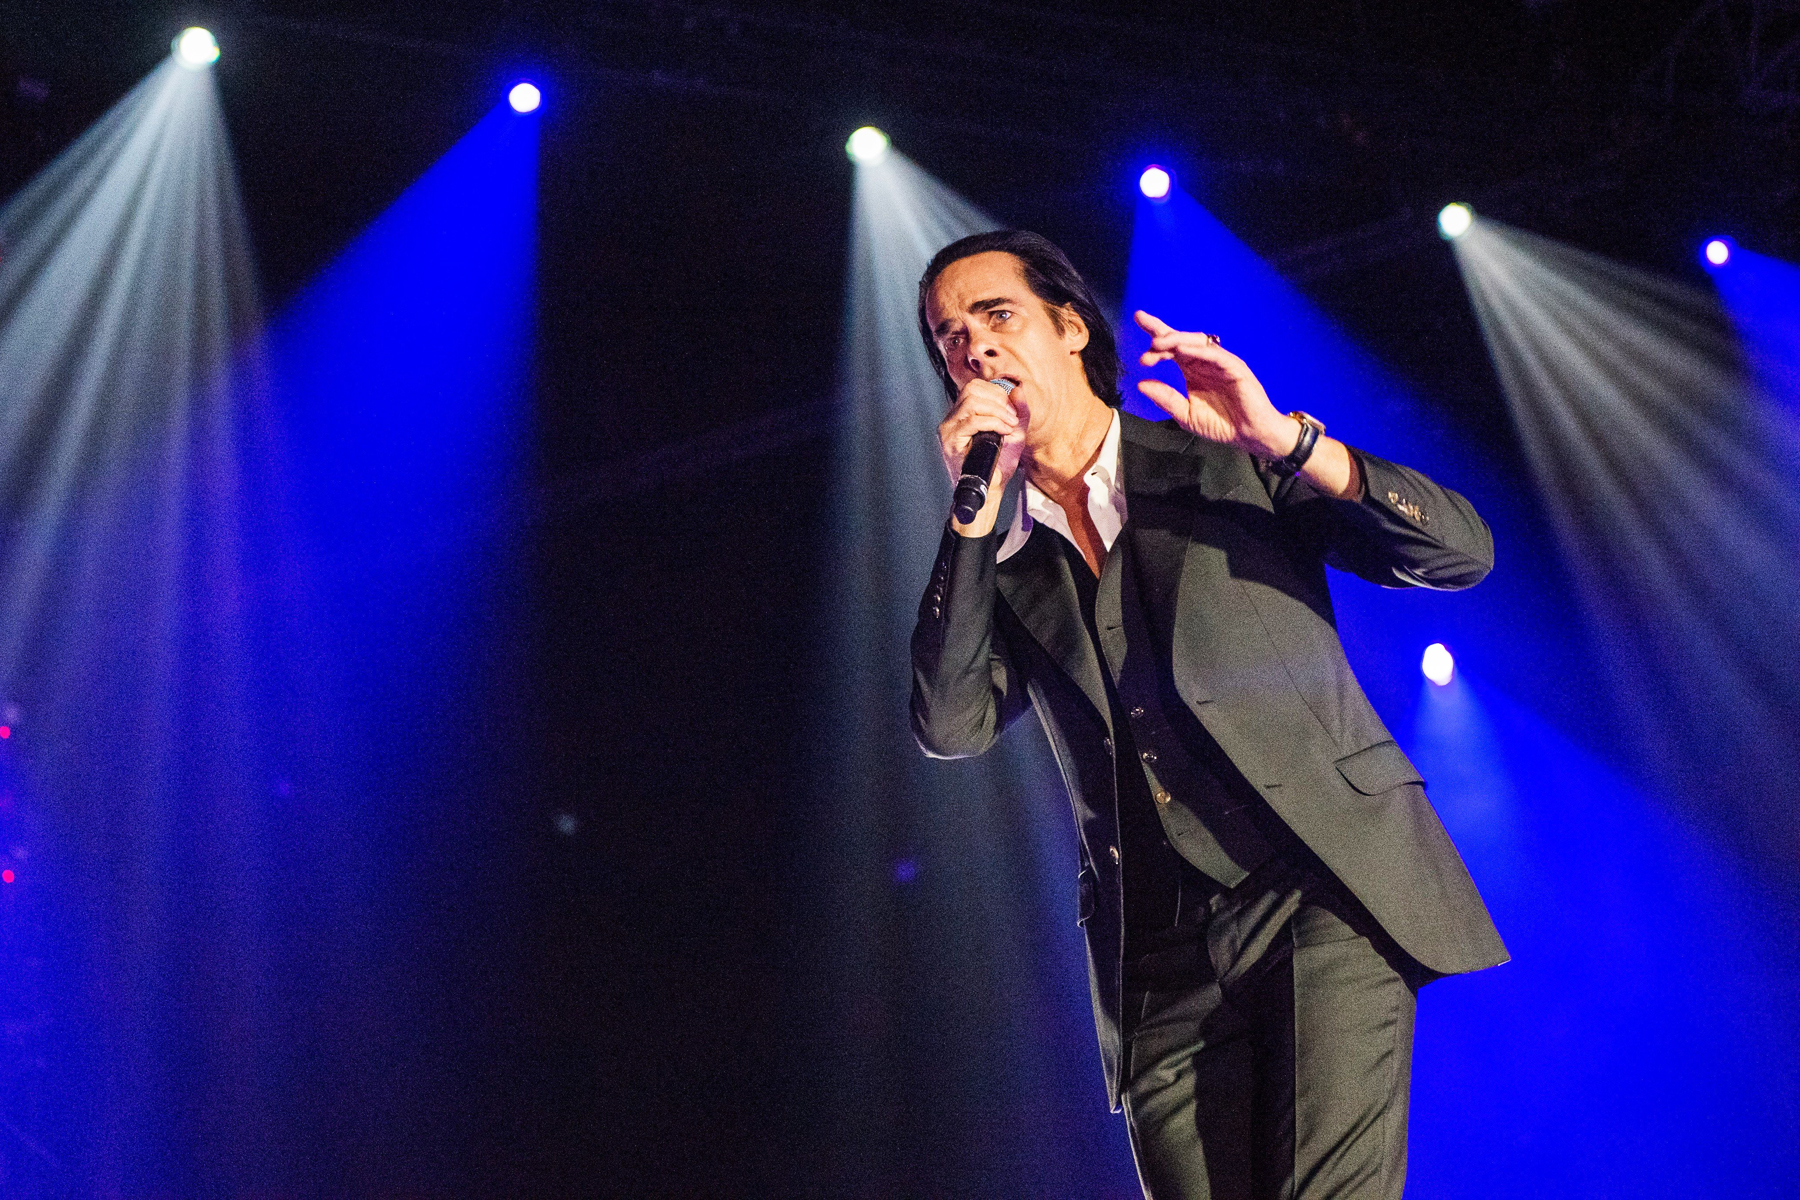 Read Nick Cave's Open Letter to Brian Eno Defending Israel